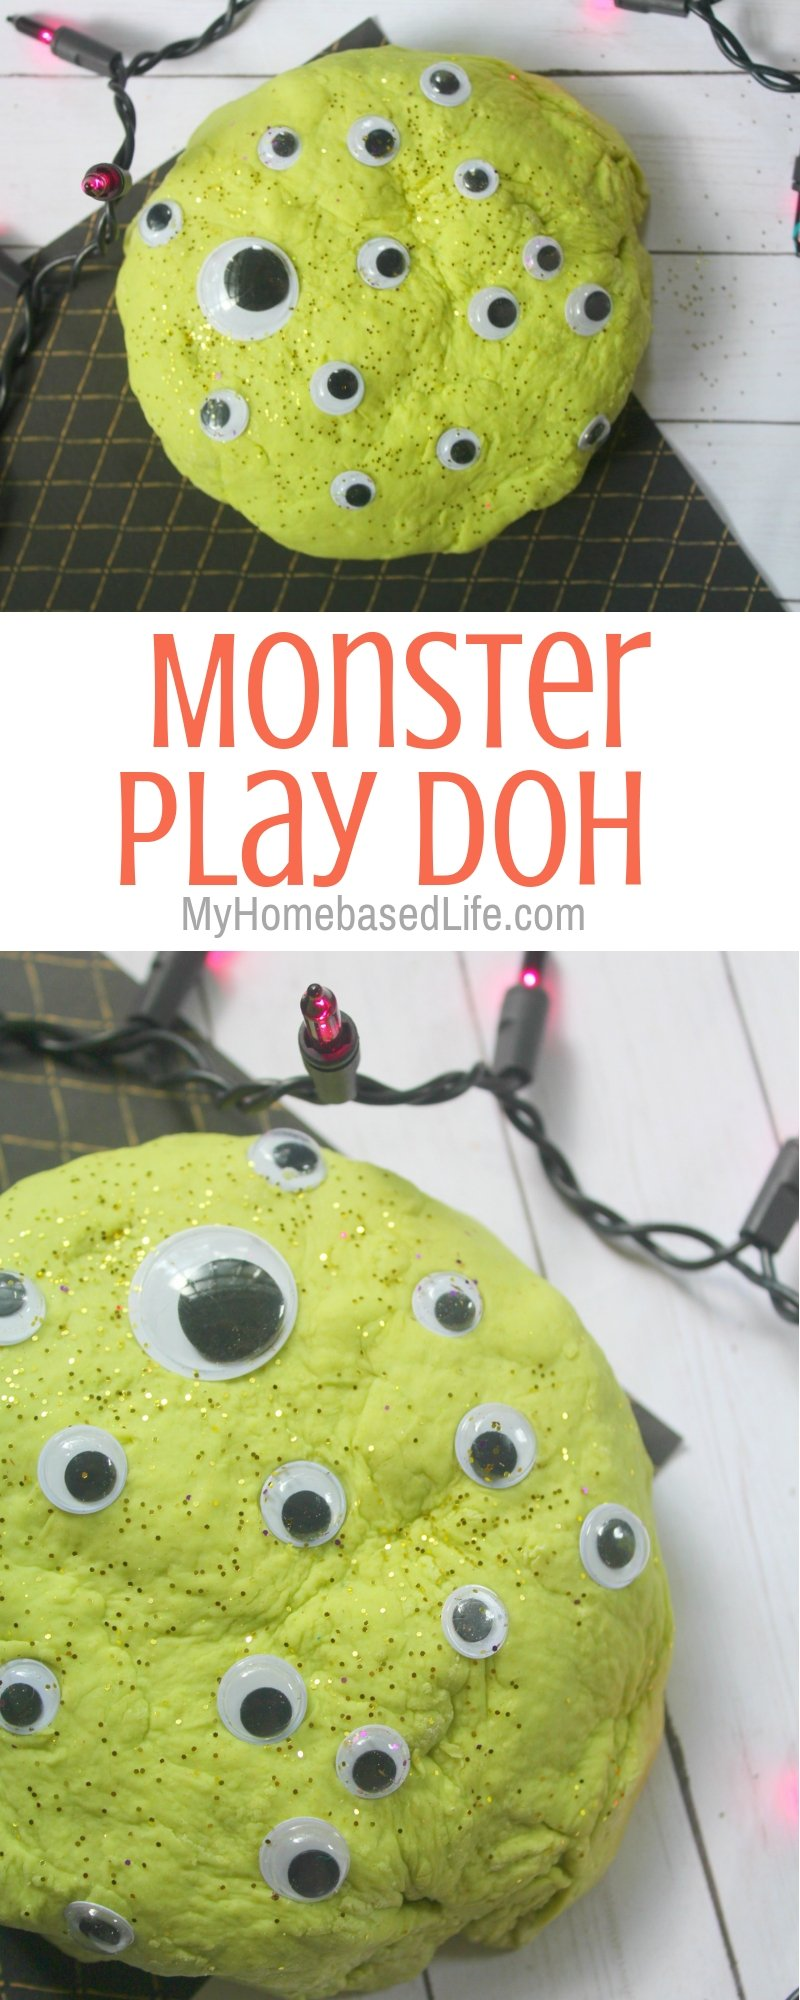 Make this easy Monster Eye Play Doh for kids this year. Easily Customizable with your colors and googly eyes. So much fun for kids of all ages. #sensoryplay #kidsactivity #playdoh #myhomebasedlife #monster | Playdoh | Kids Activities | Simple Kids DIY | Sensory Play Ideas | Halloween Activities for Kids | Non Candy Halloween Treat Ideas